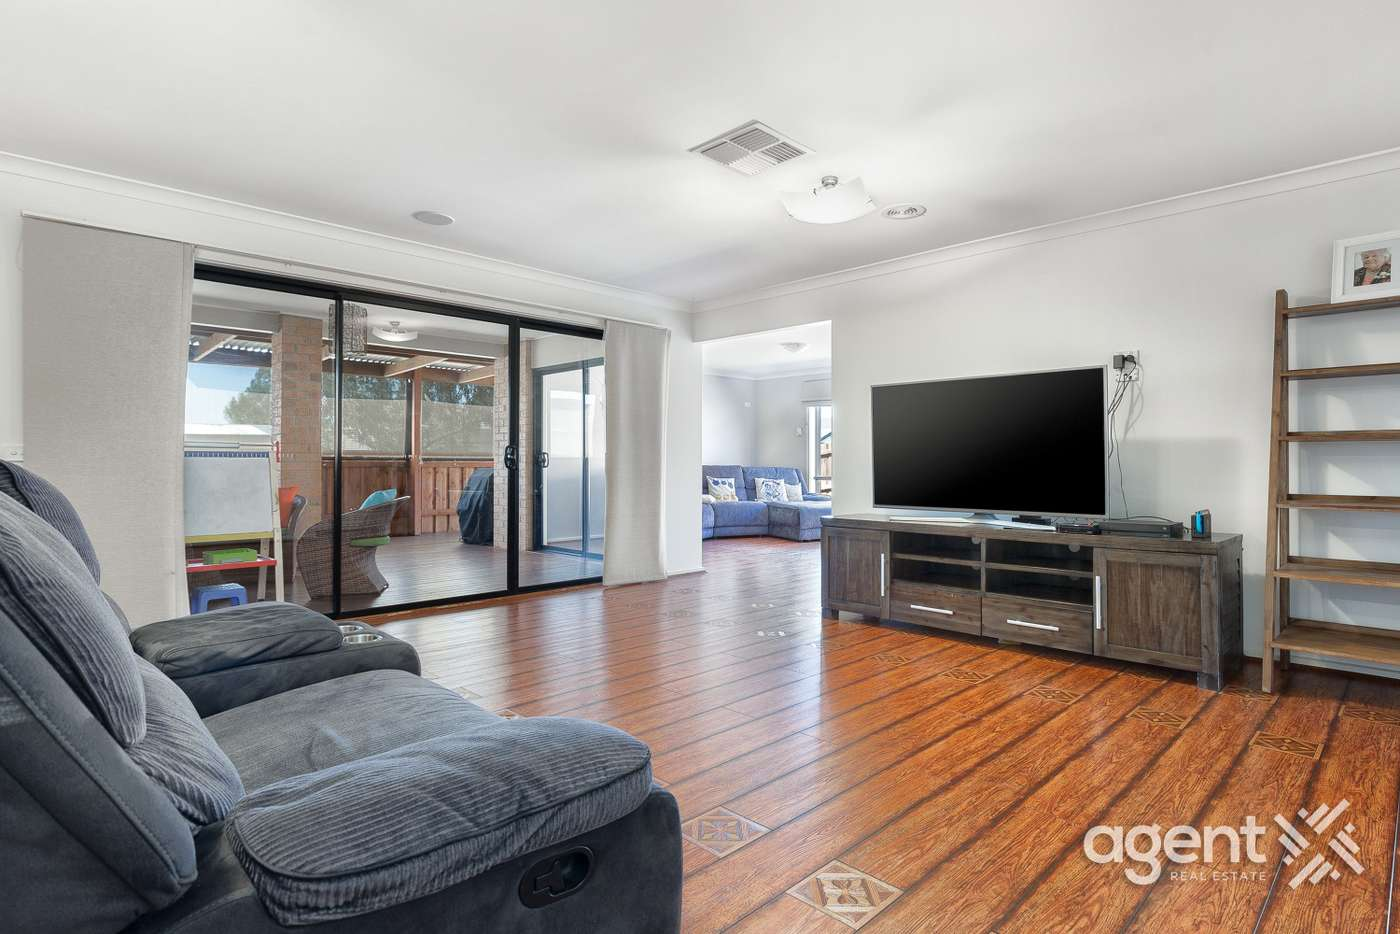 Sixth view of Homely house listing, 39 Belvedere Drive, Pakenham VIC 3810